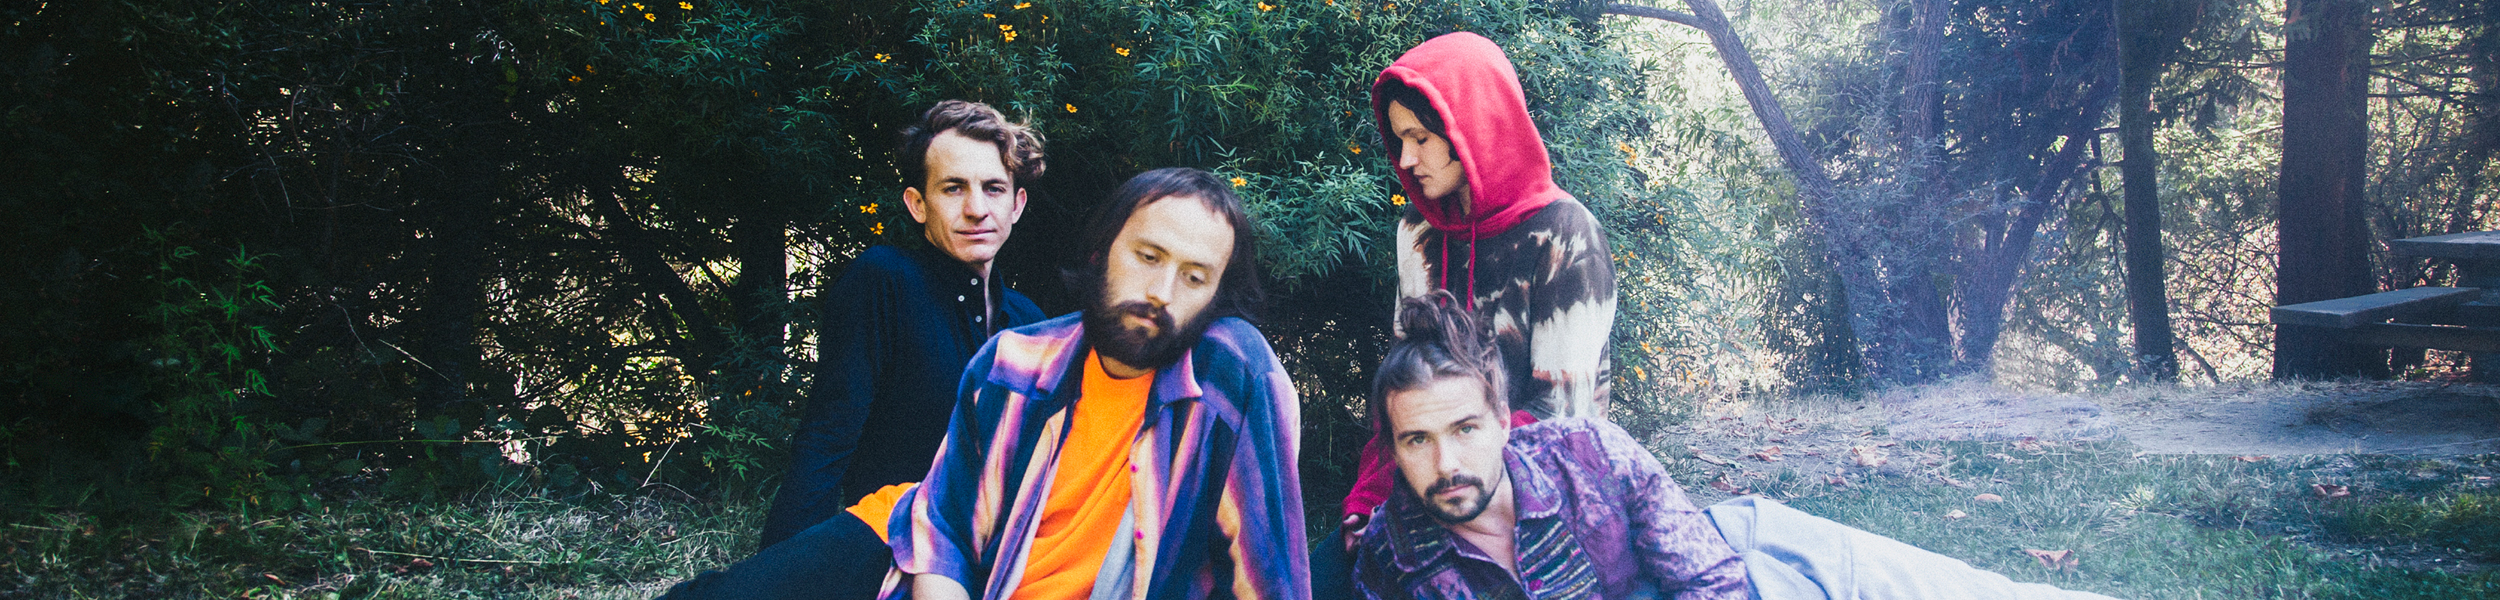 Big Thief - Out Now on Limited Orange Vinyl, Black Vinyl, CD & Digital